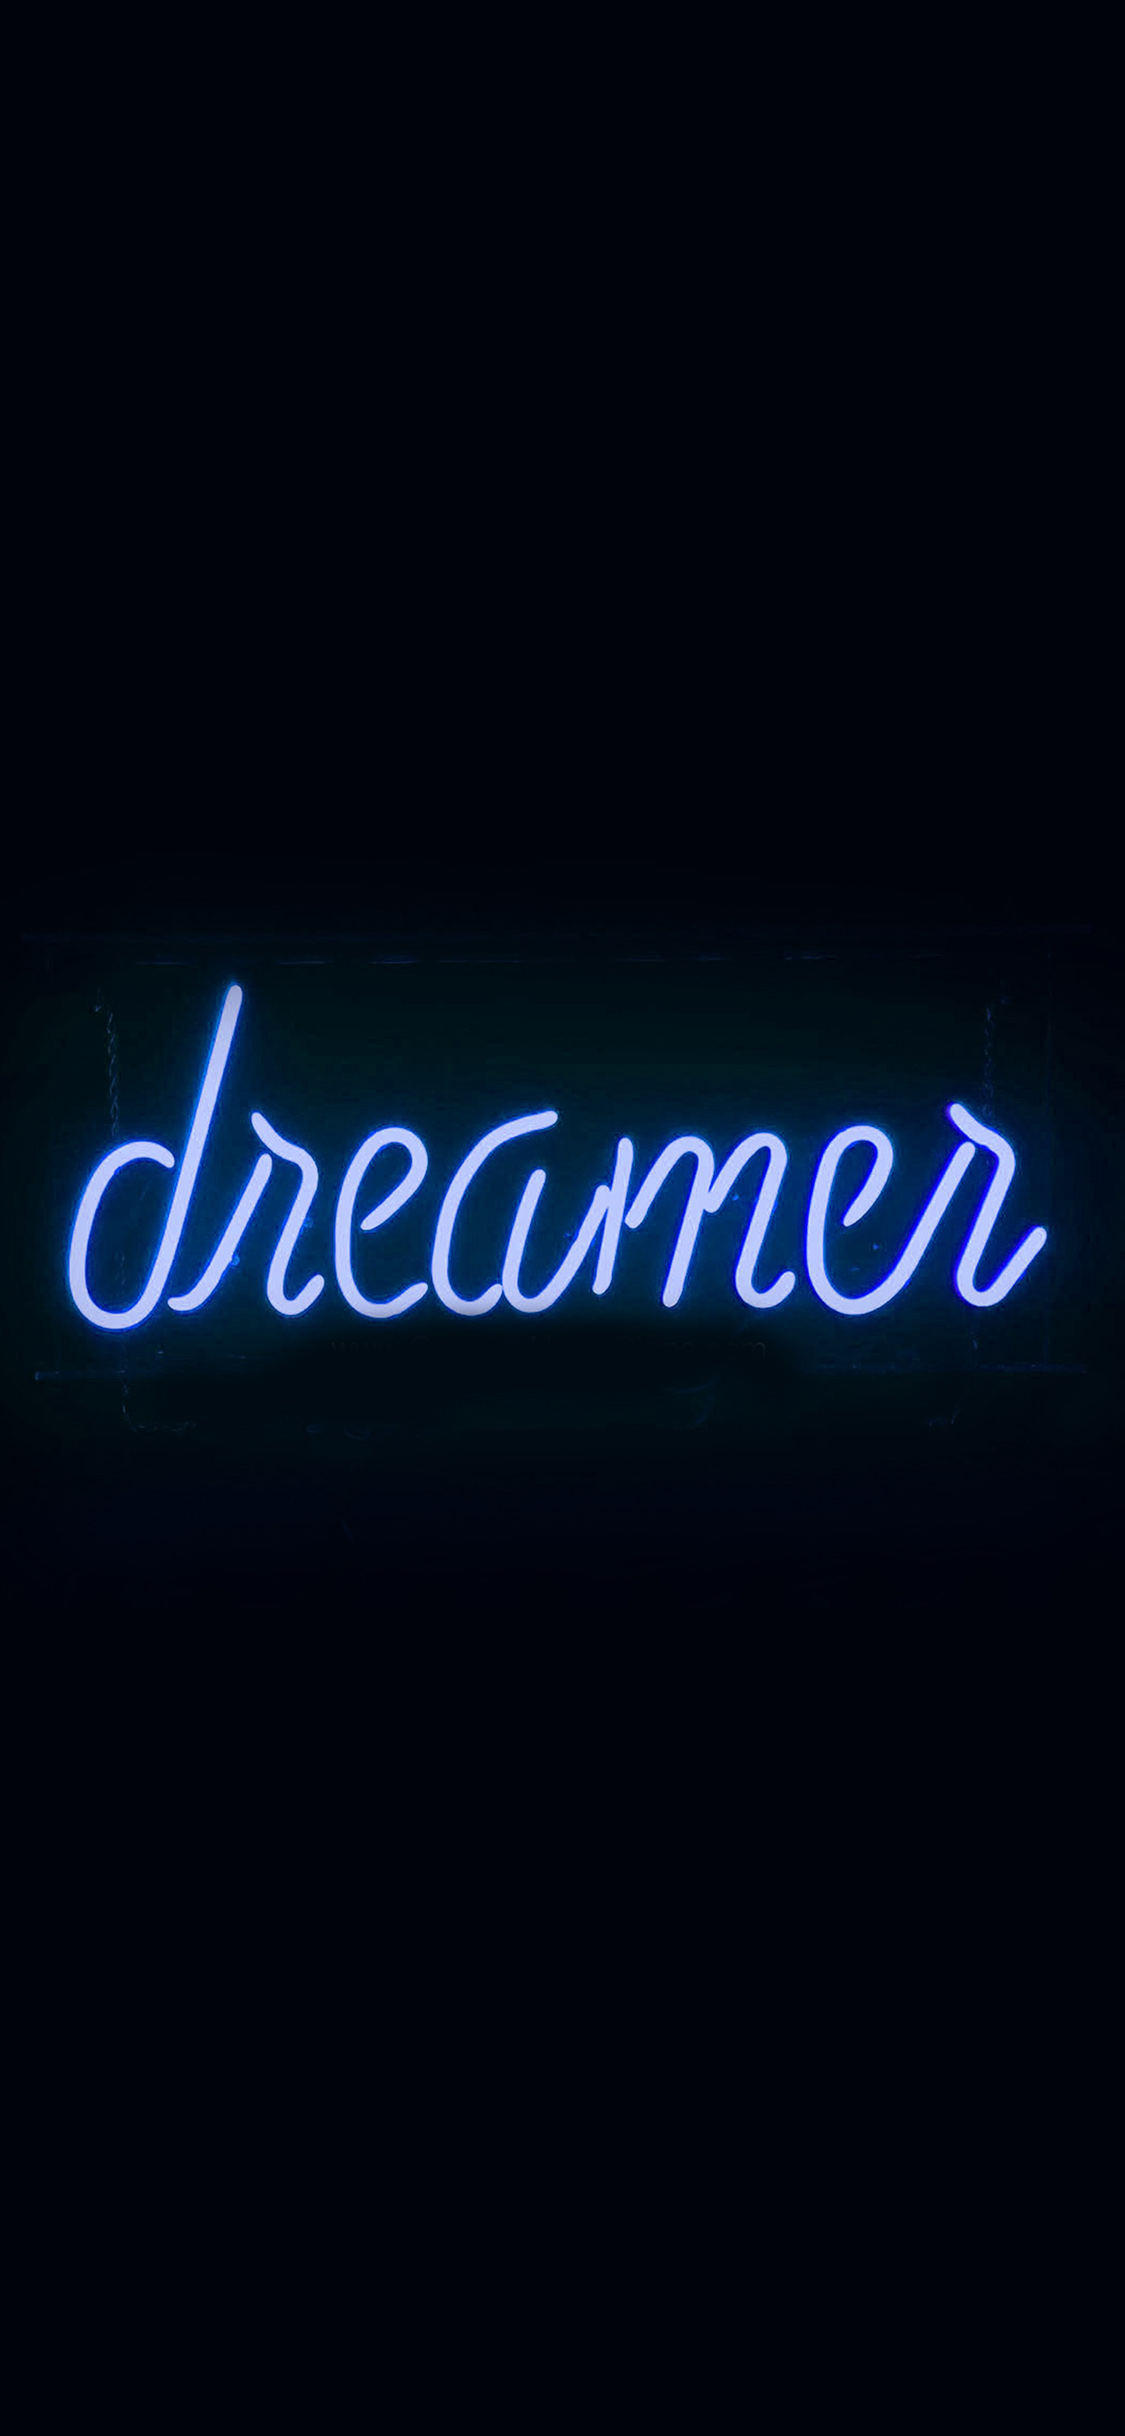 papers.co ay57 dreamers neon sign dark illustration art blue 41 iphone wallpaper